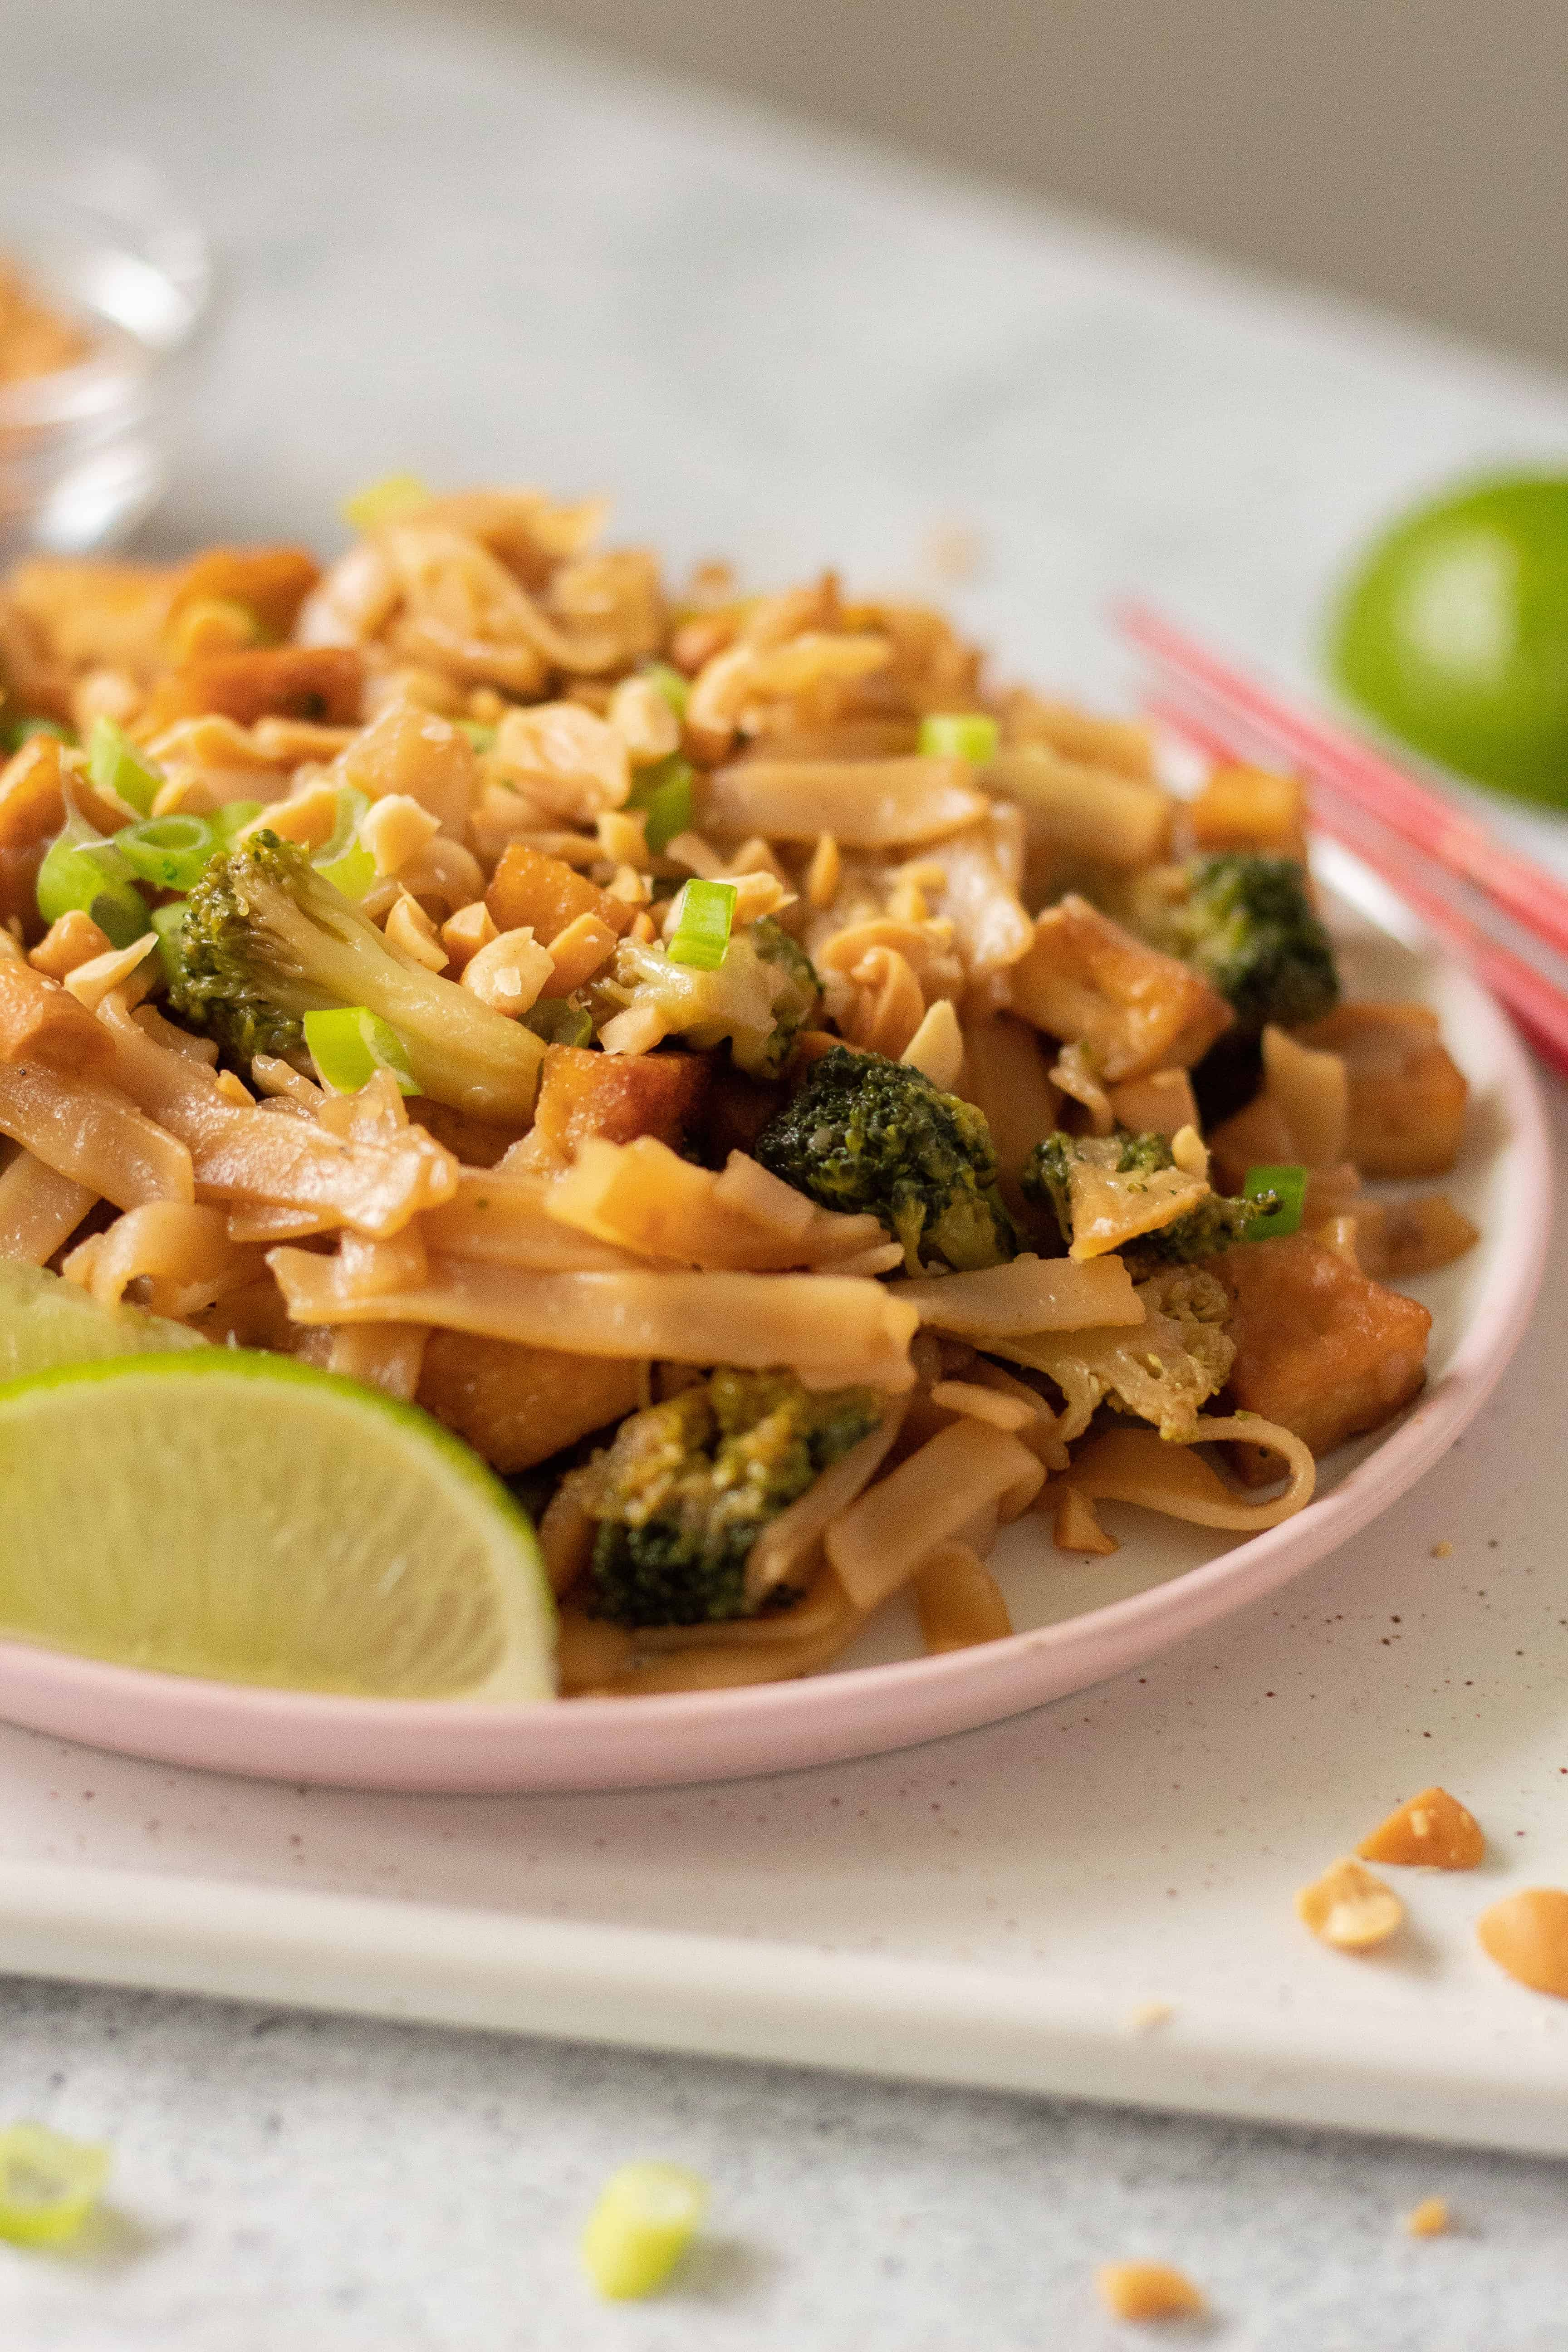 Vegan Rice Noodle Stir Fry with Tofu and Veggies - a tasty, beginner friendly, Pad Thai-inspired meal, that is super nutritious. | The Green Loot #vegan #veganrecipes #healthyeating #healthyrecipes #Asianrecipes